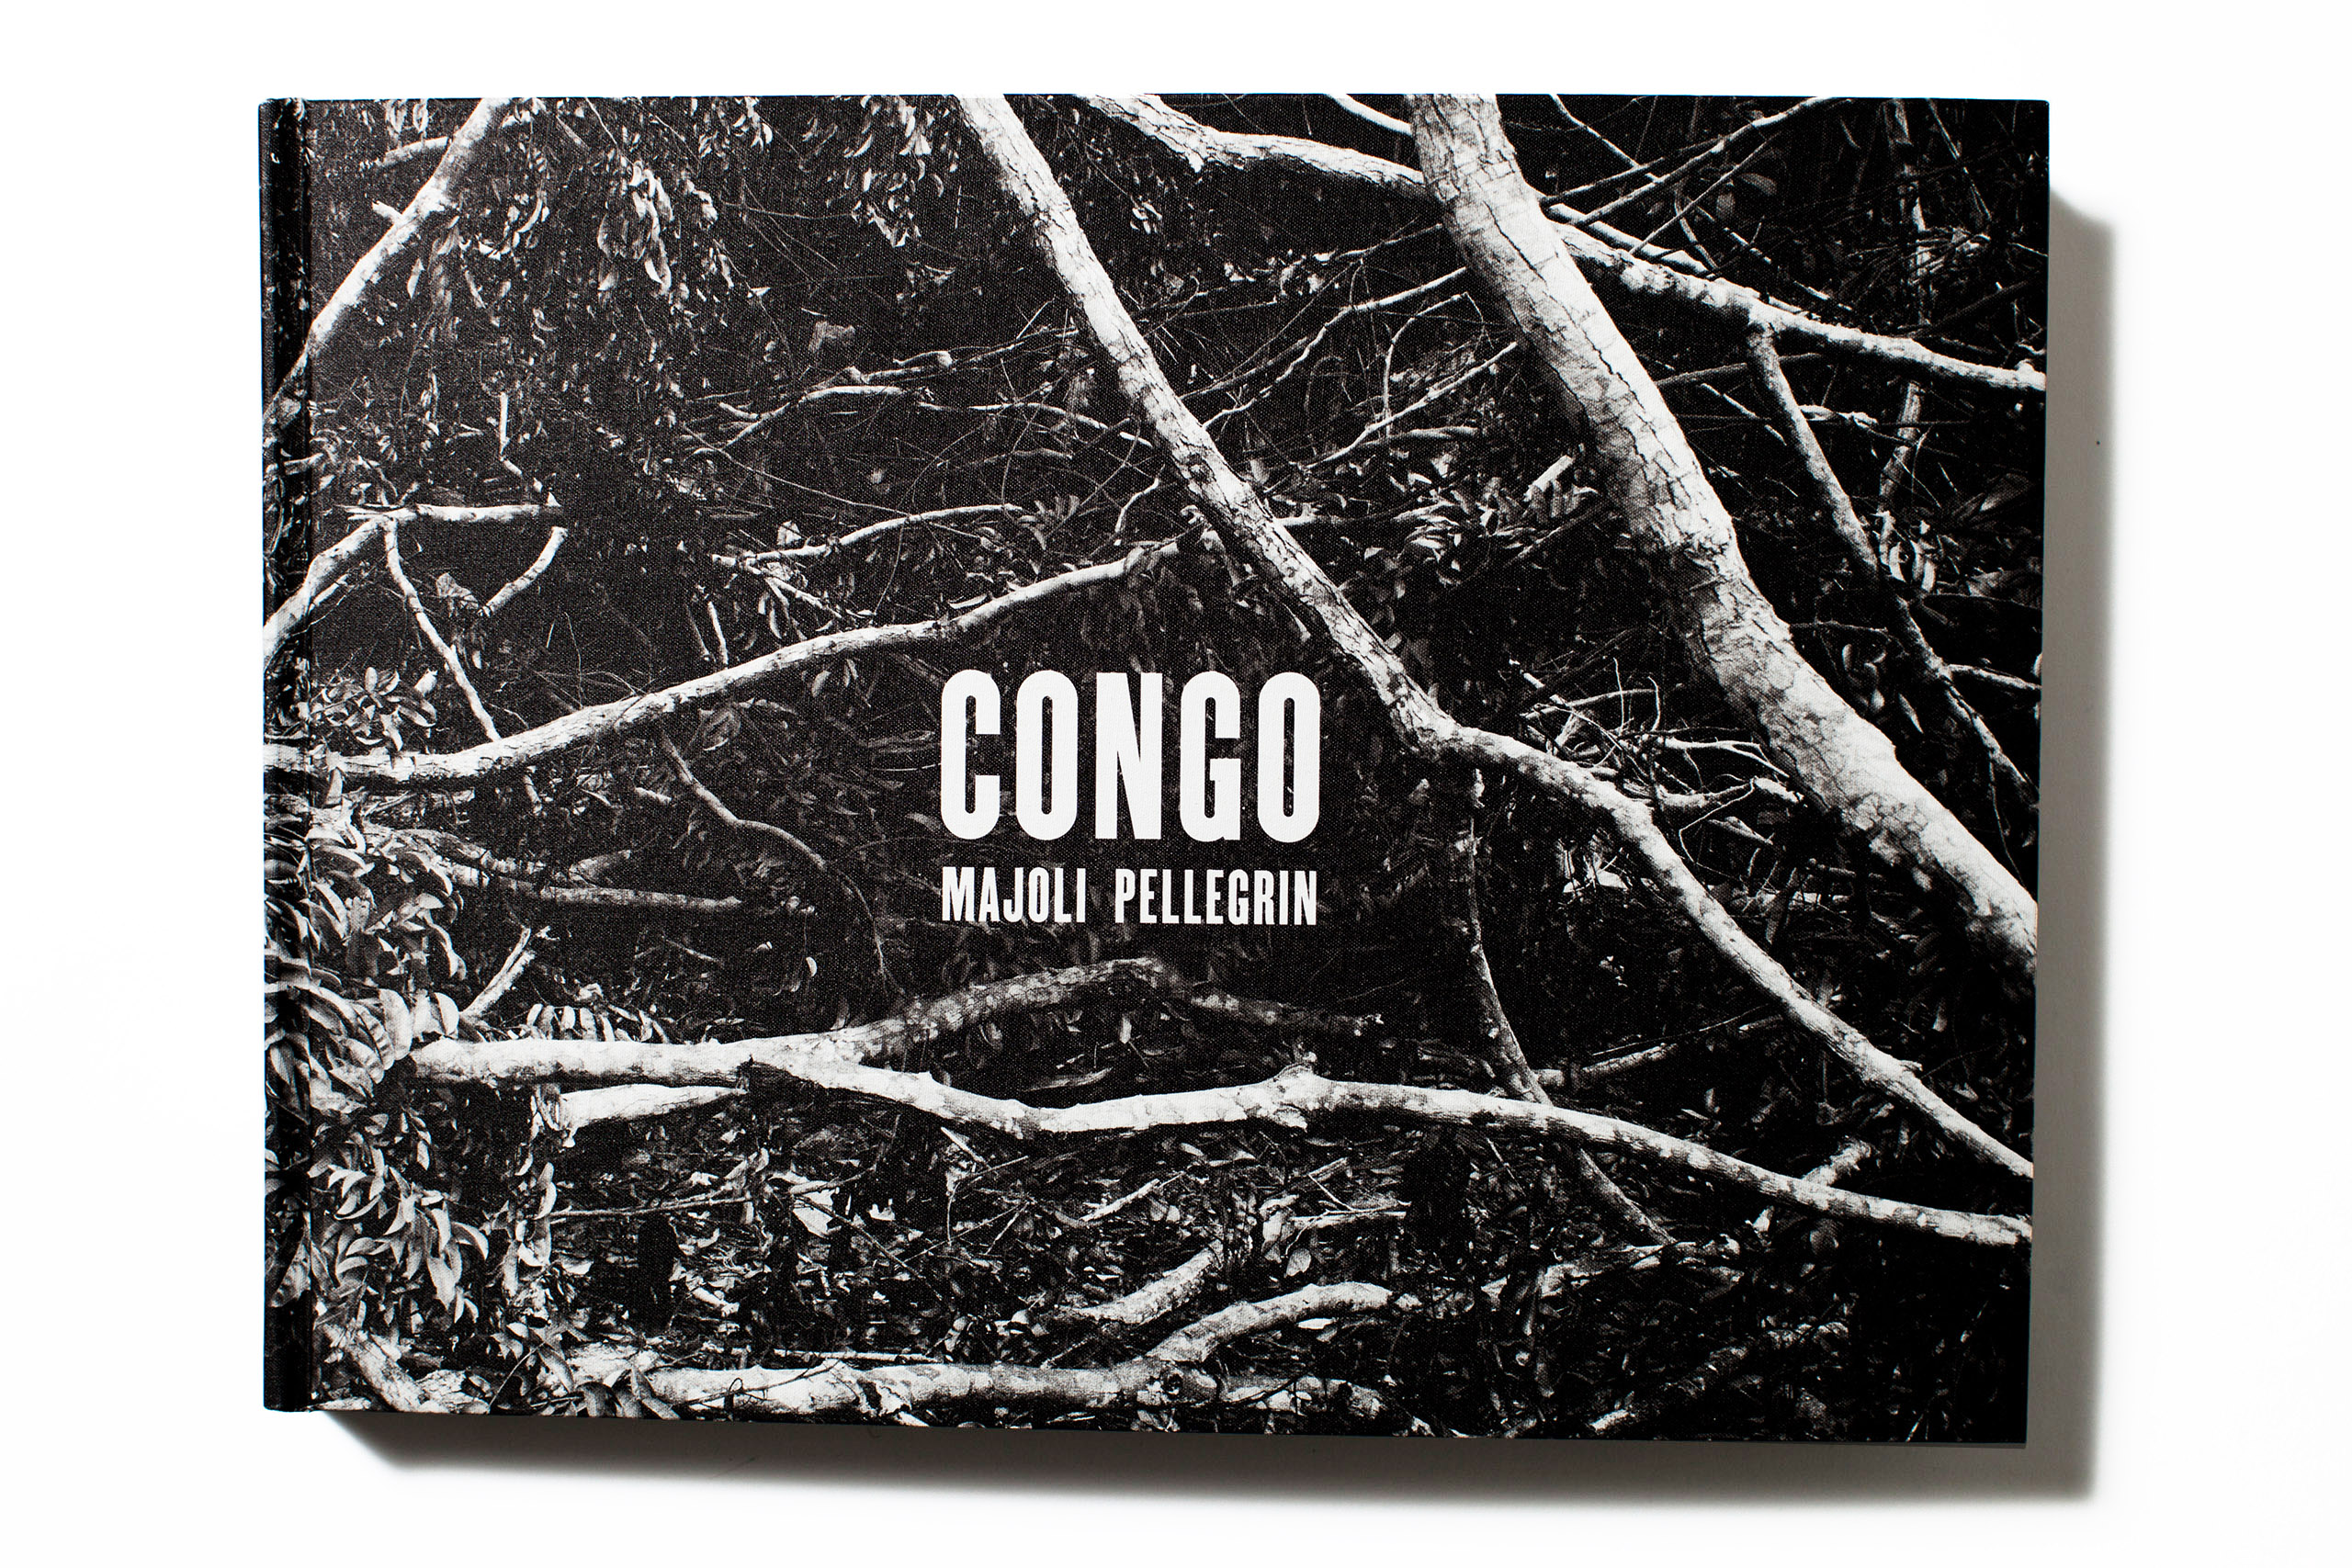 Congo                                by                               Paolo Pellegrin and Alex Majoli, published by Aperture, selected by Alice Gabriner, International Photo Editor, TIME.